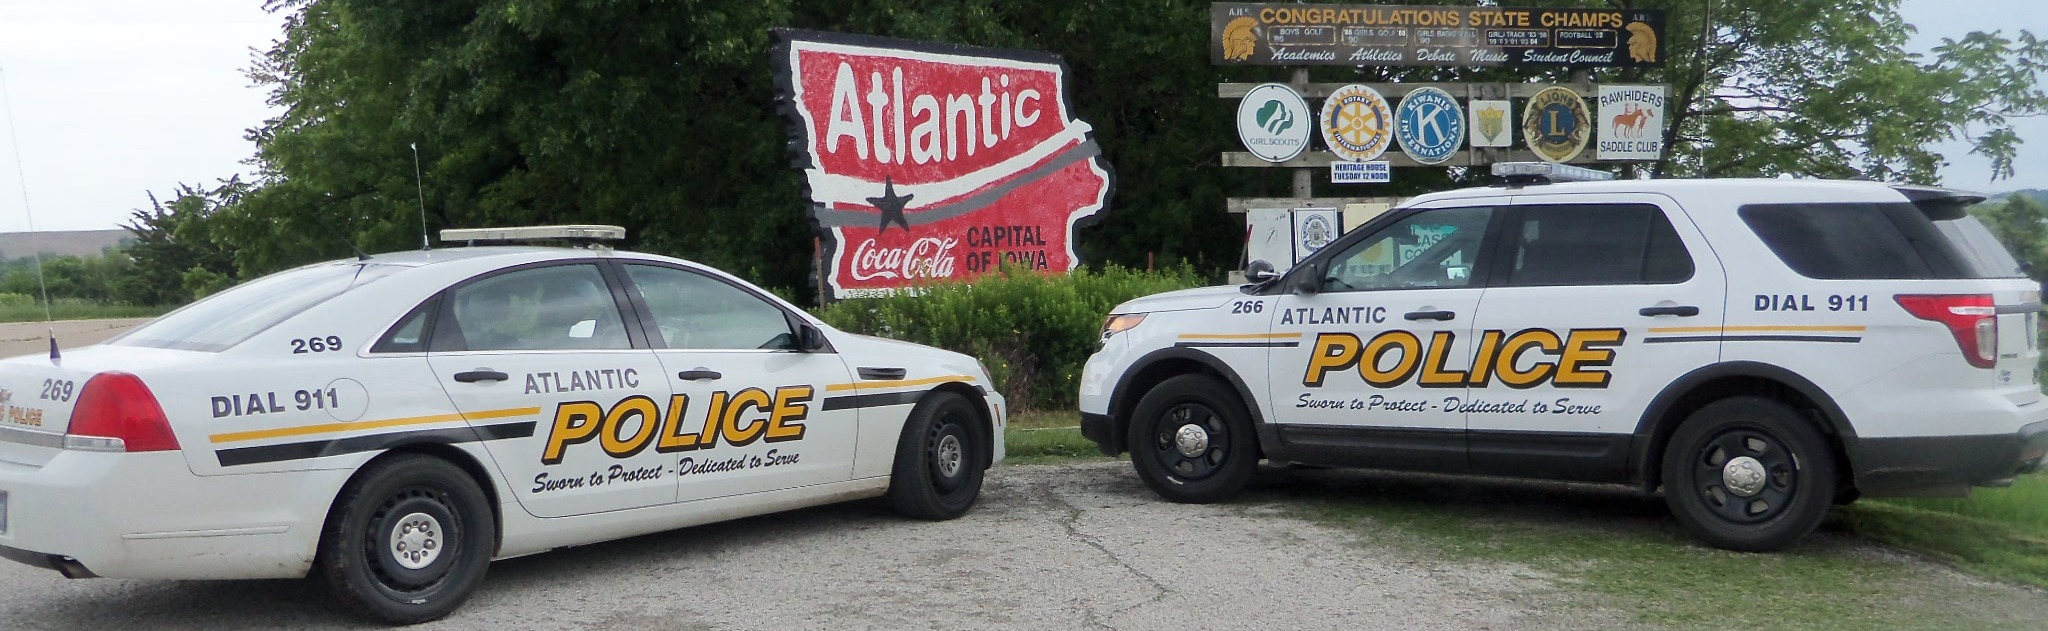 Atlantic Police Department, IA Police Jobs